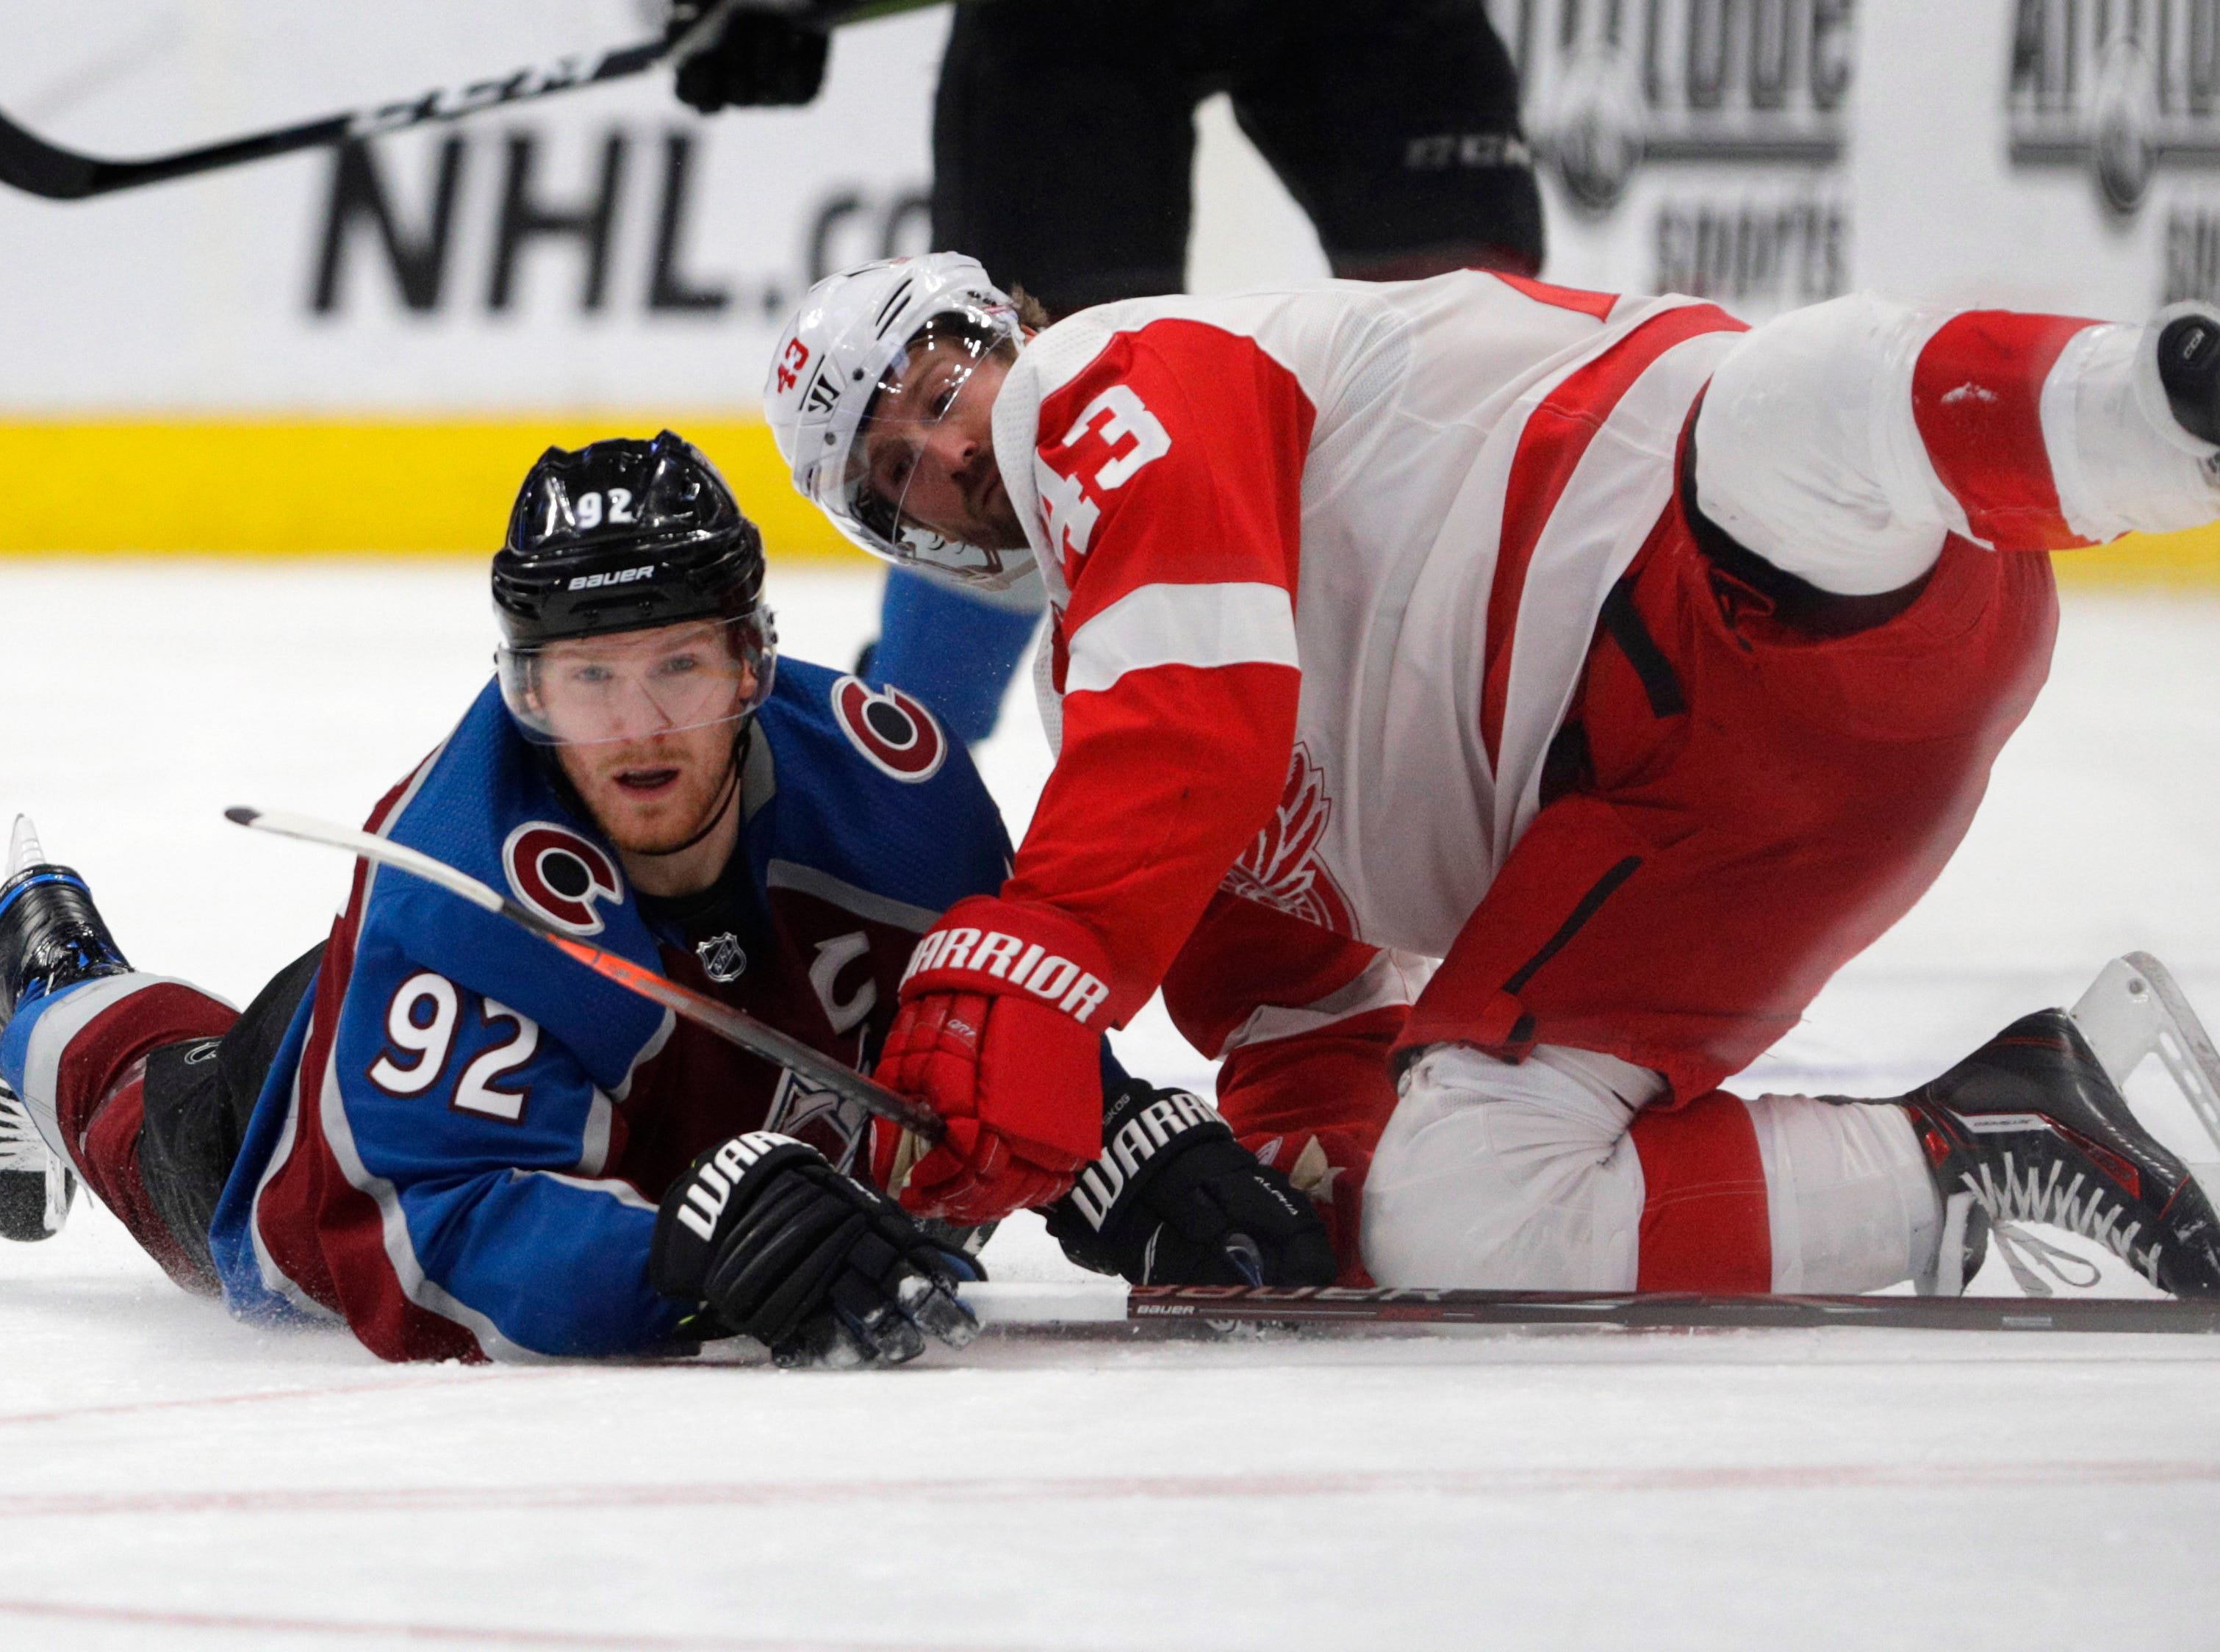 Colorado Avalanche left wing Gabriel Landeskog (92) collides with Detroit Red Wings left wing Darren Helm (43) during the second period of an NHL hockey game in Denver, Tuesday, March 5, 2019